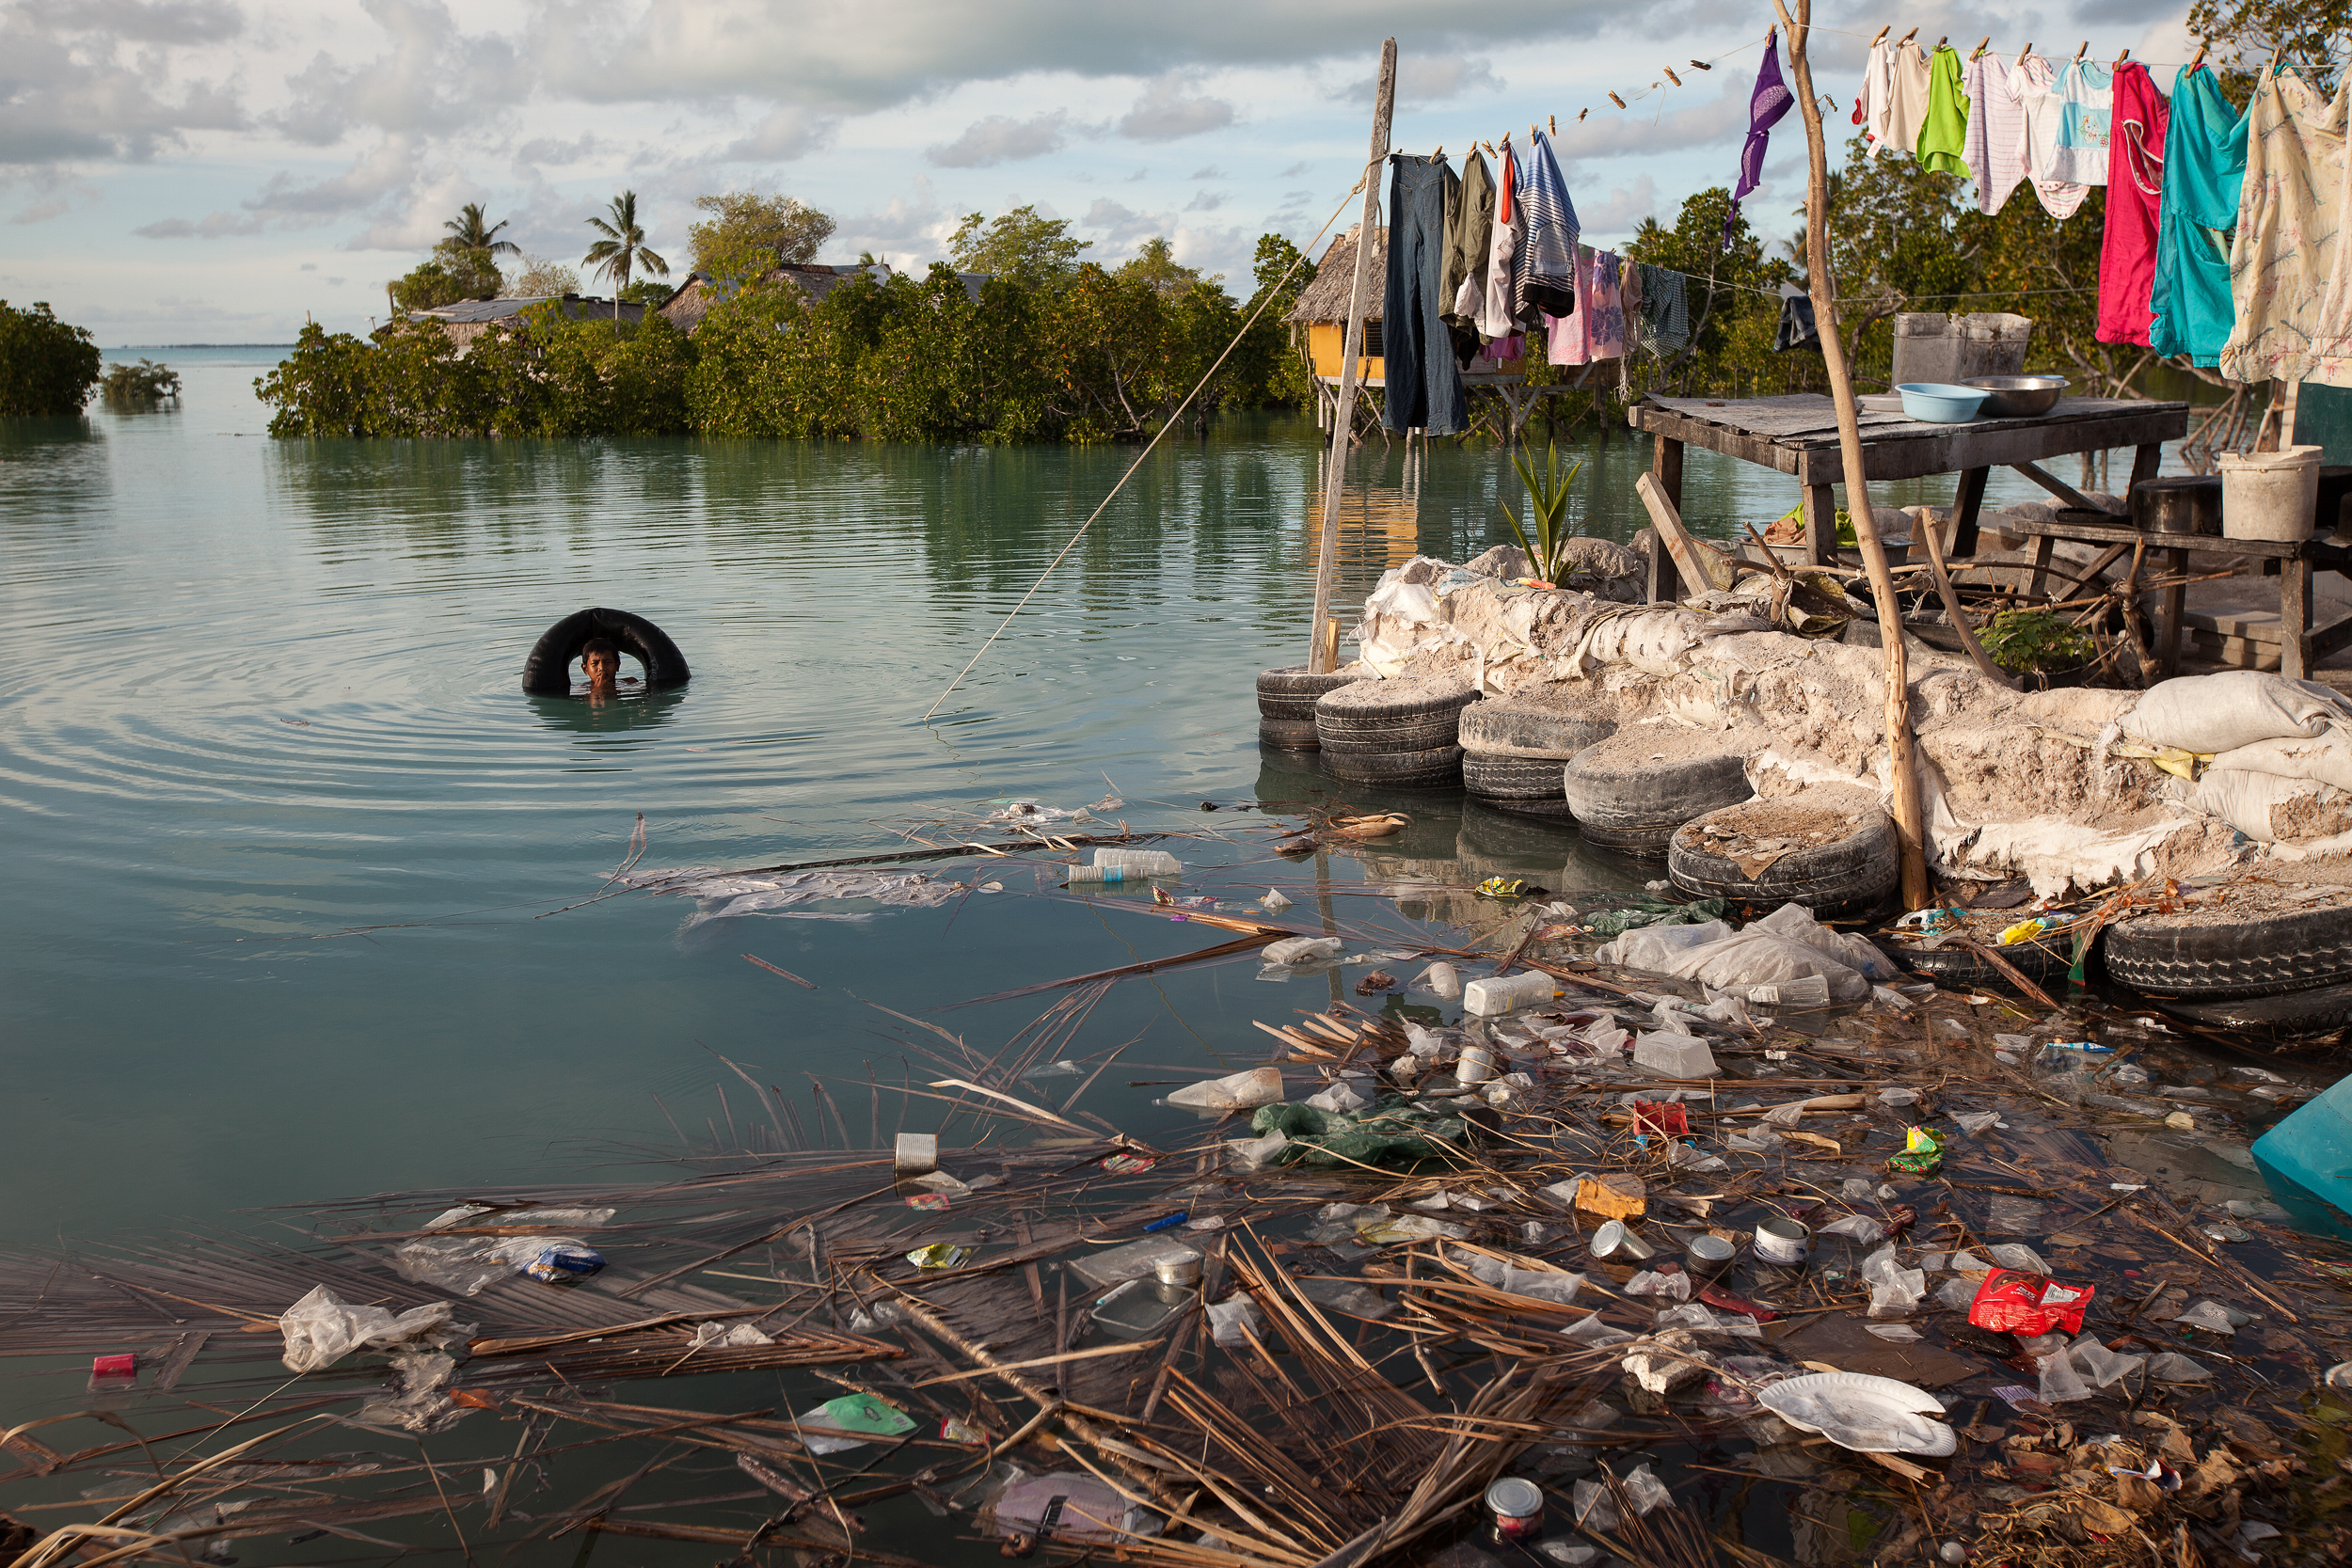 A boy swims in the lagoon next to his house in Temwaiku that is heavily polluted with rubbish brought in by the tide each day. Pollution is of course not caused by climate change, but the rising seas means less land and less money to deal with the basics.